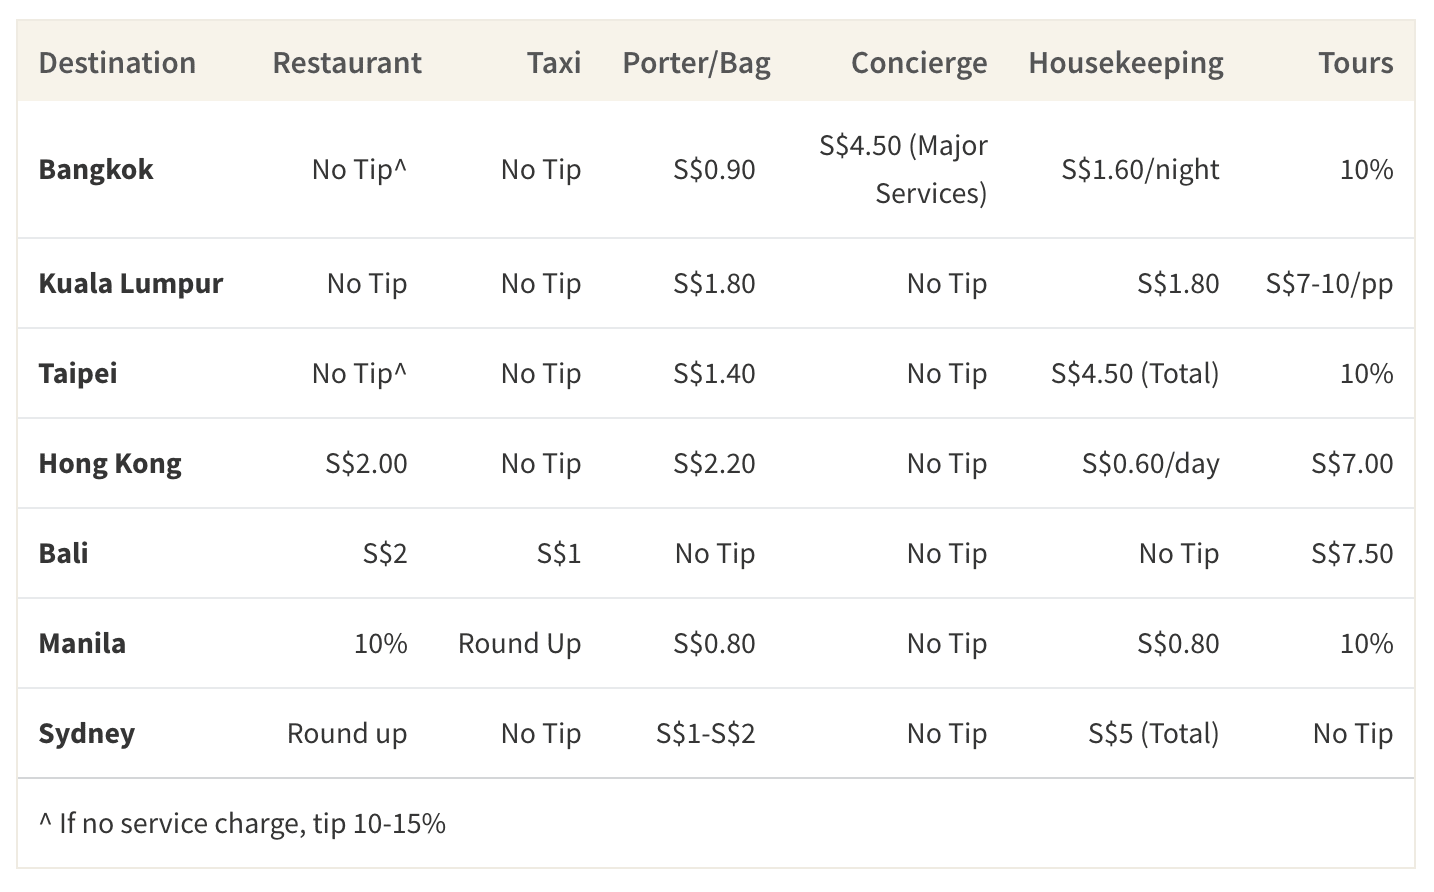 This table shows the suggested tips in major tourist destinations for Singaporeans in Asia Pacific